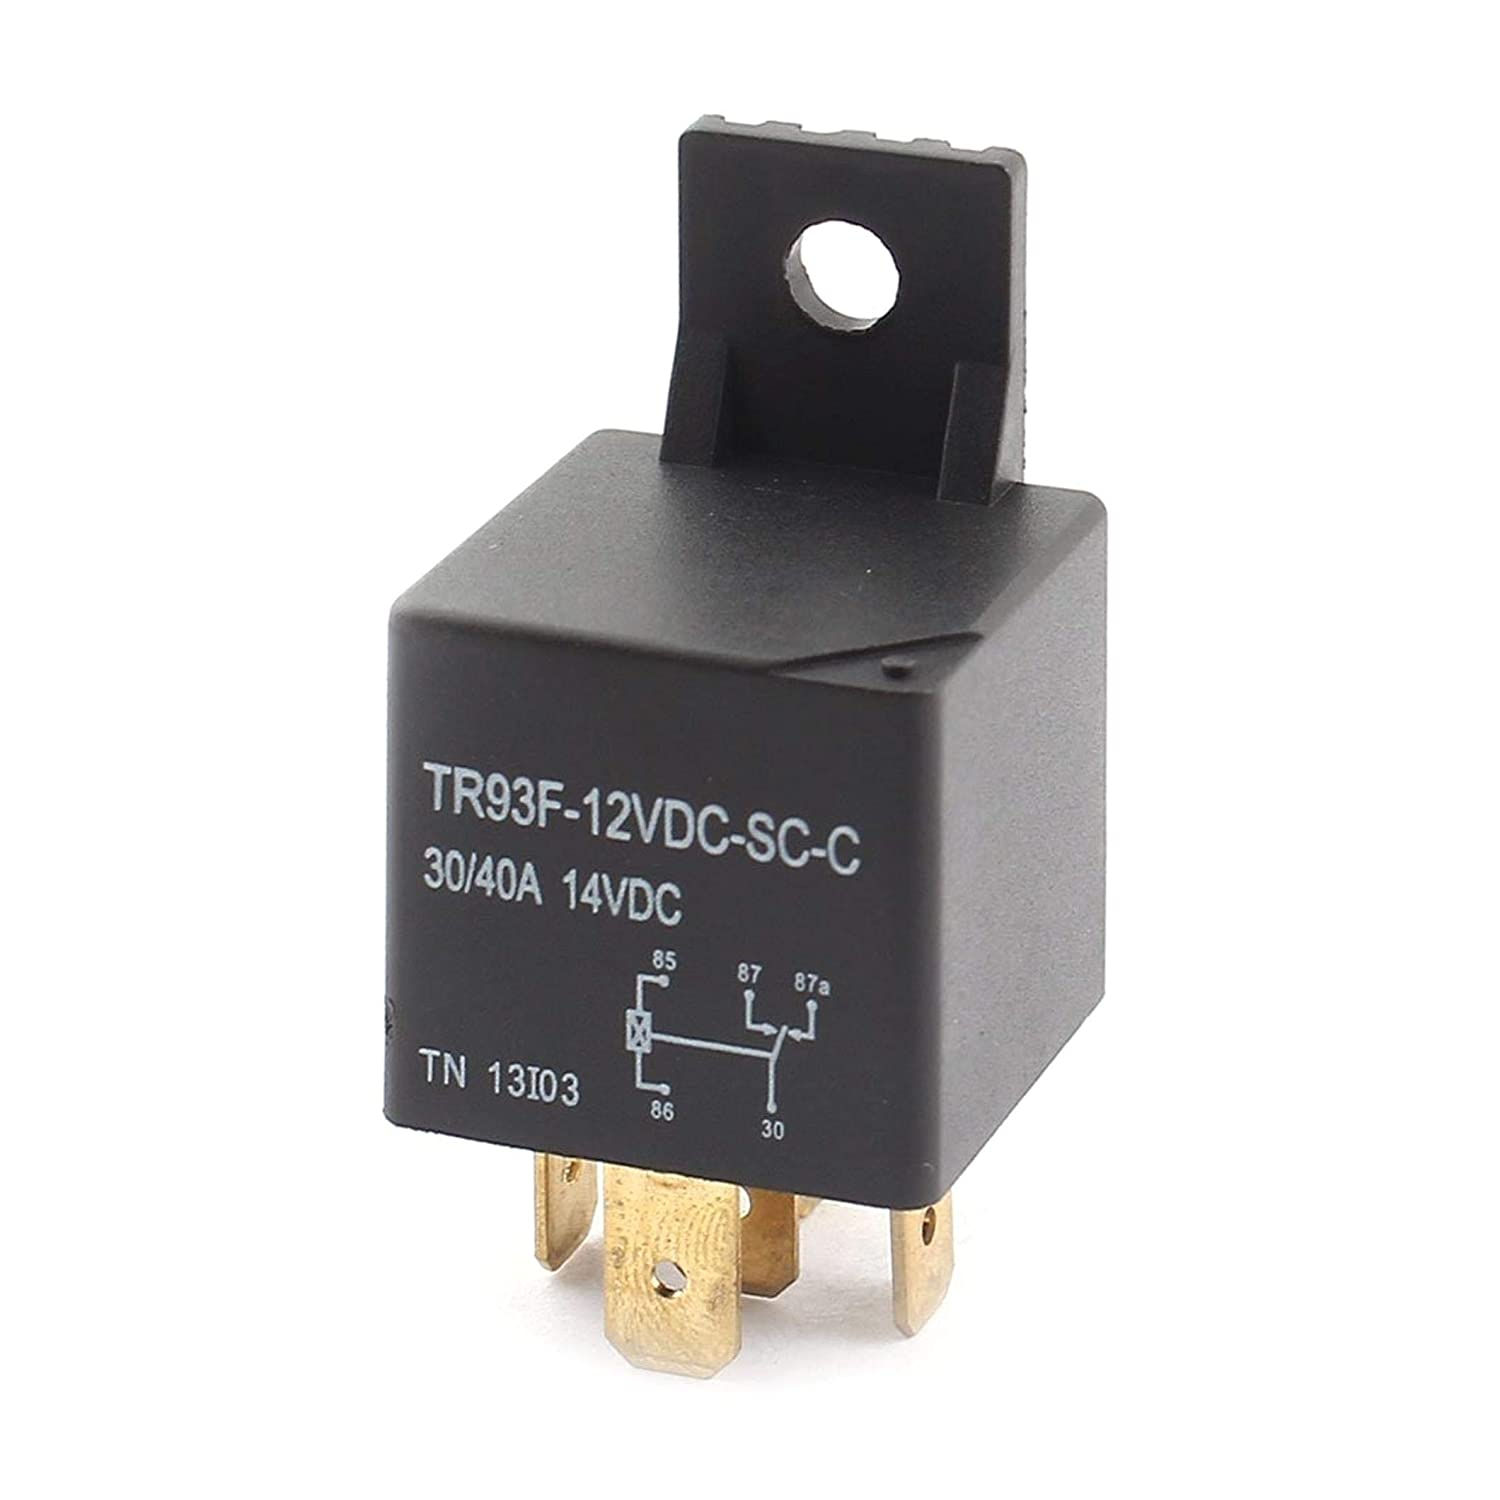 TINGB Automotive Relay DC 12V 5 Pins SPDT for Car Motorbike Boat